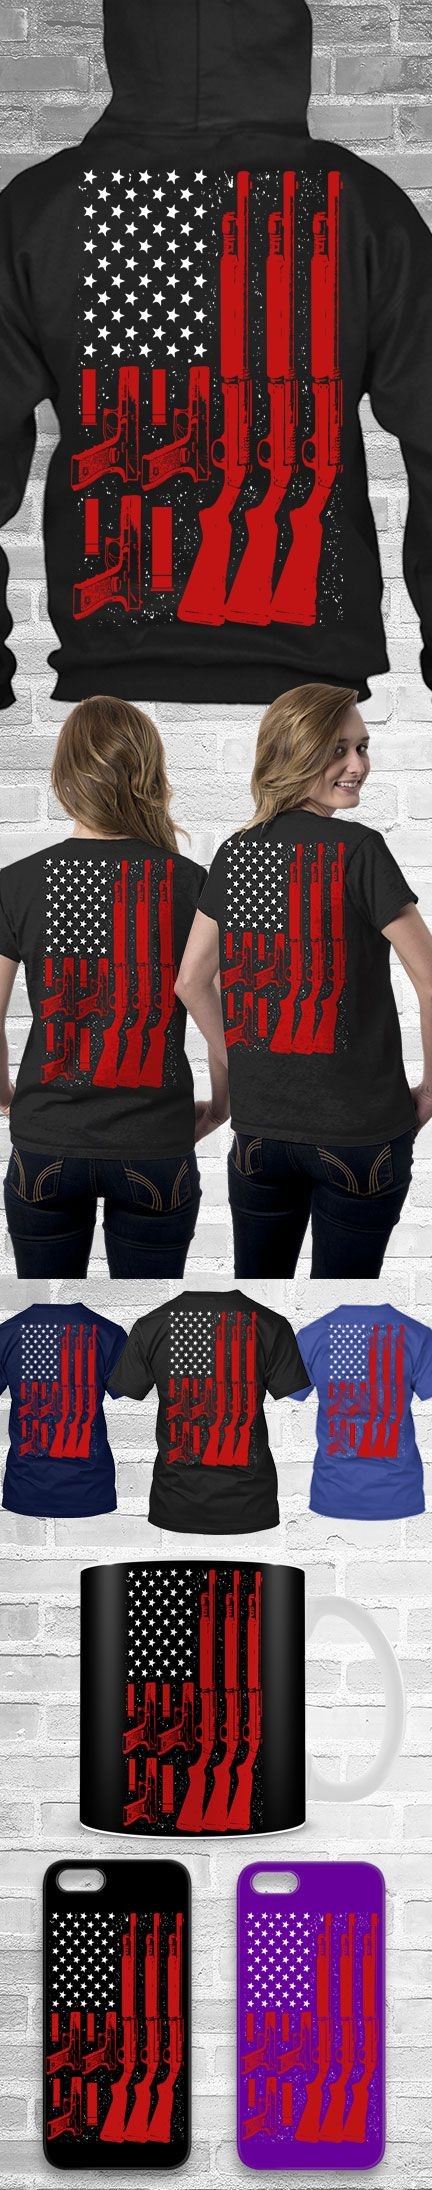 Never Disarm Shirts! Click The Image To Buy It Now or Tag Someone You Want To Buy This For.  #secondamendment